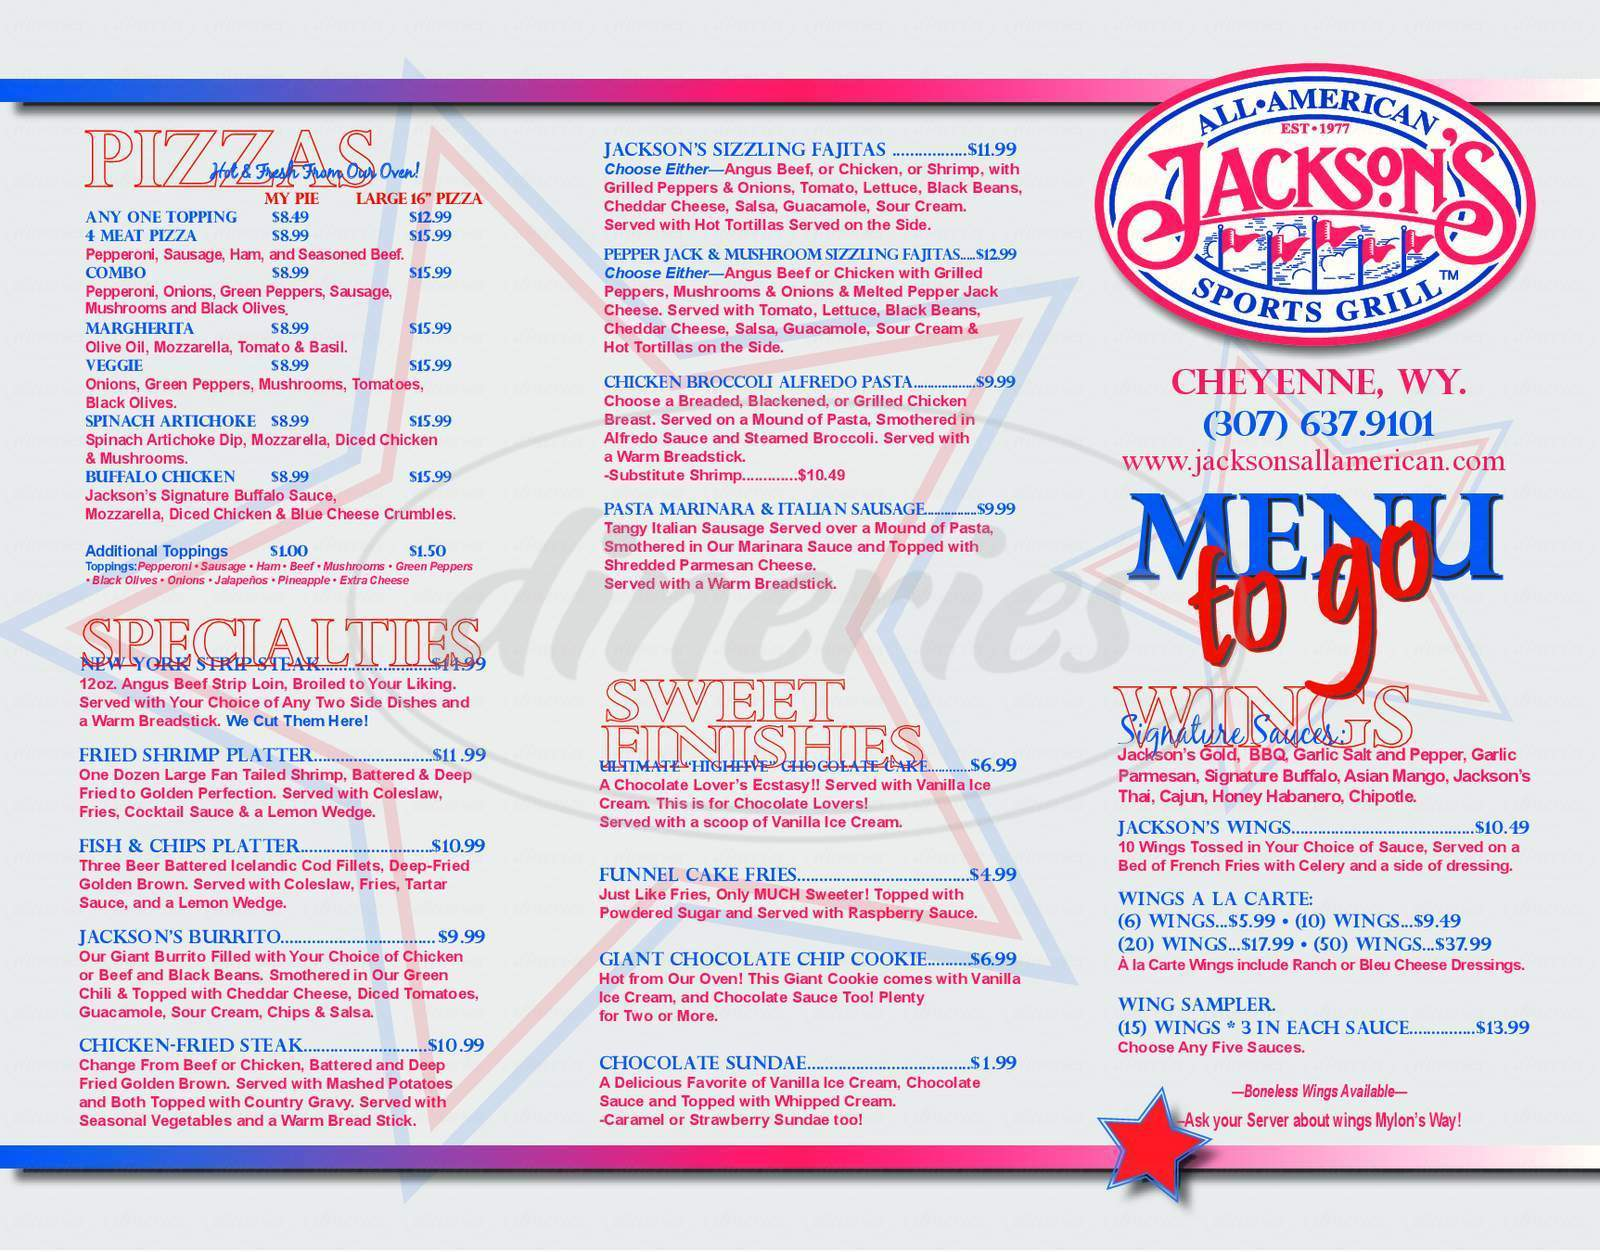 menu for Jackson's All American Sports Grill